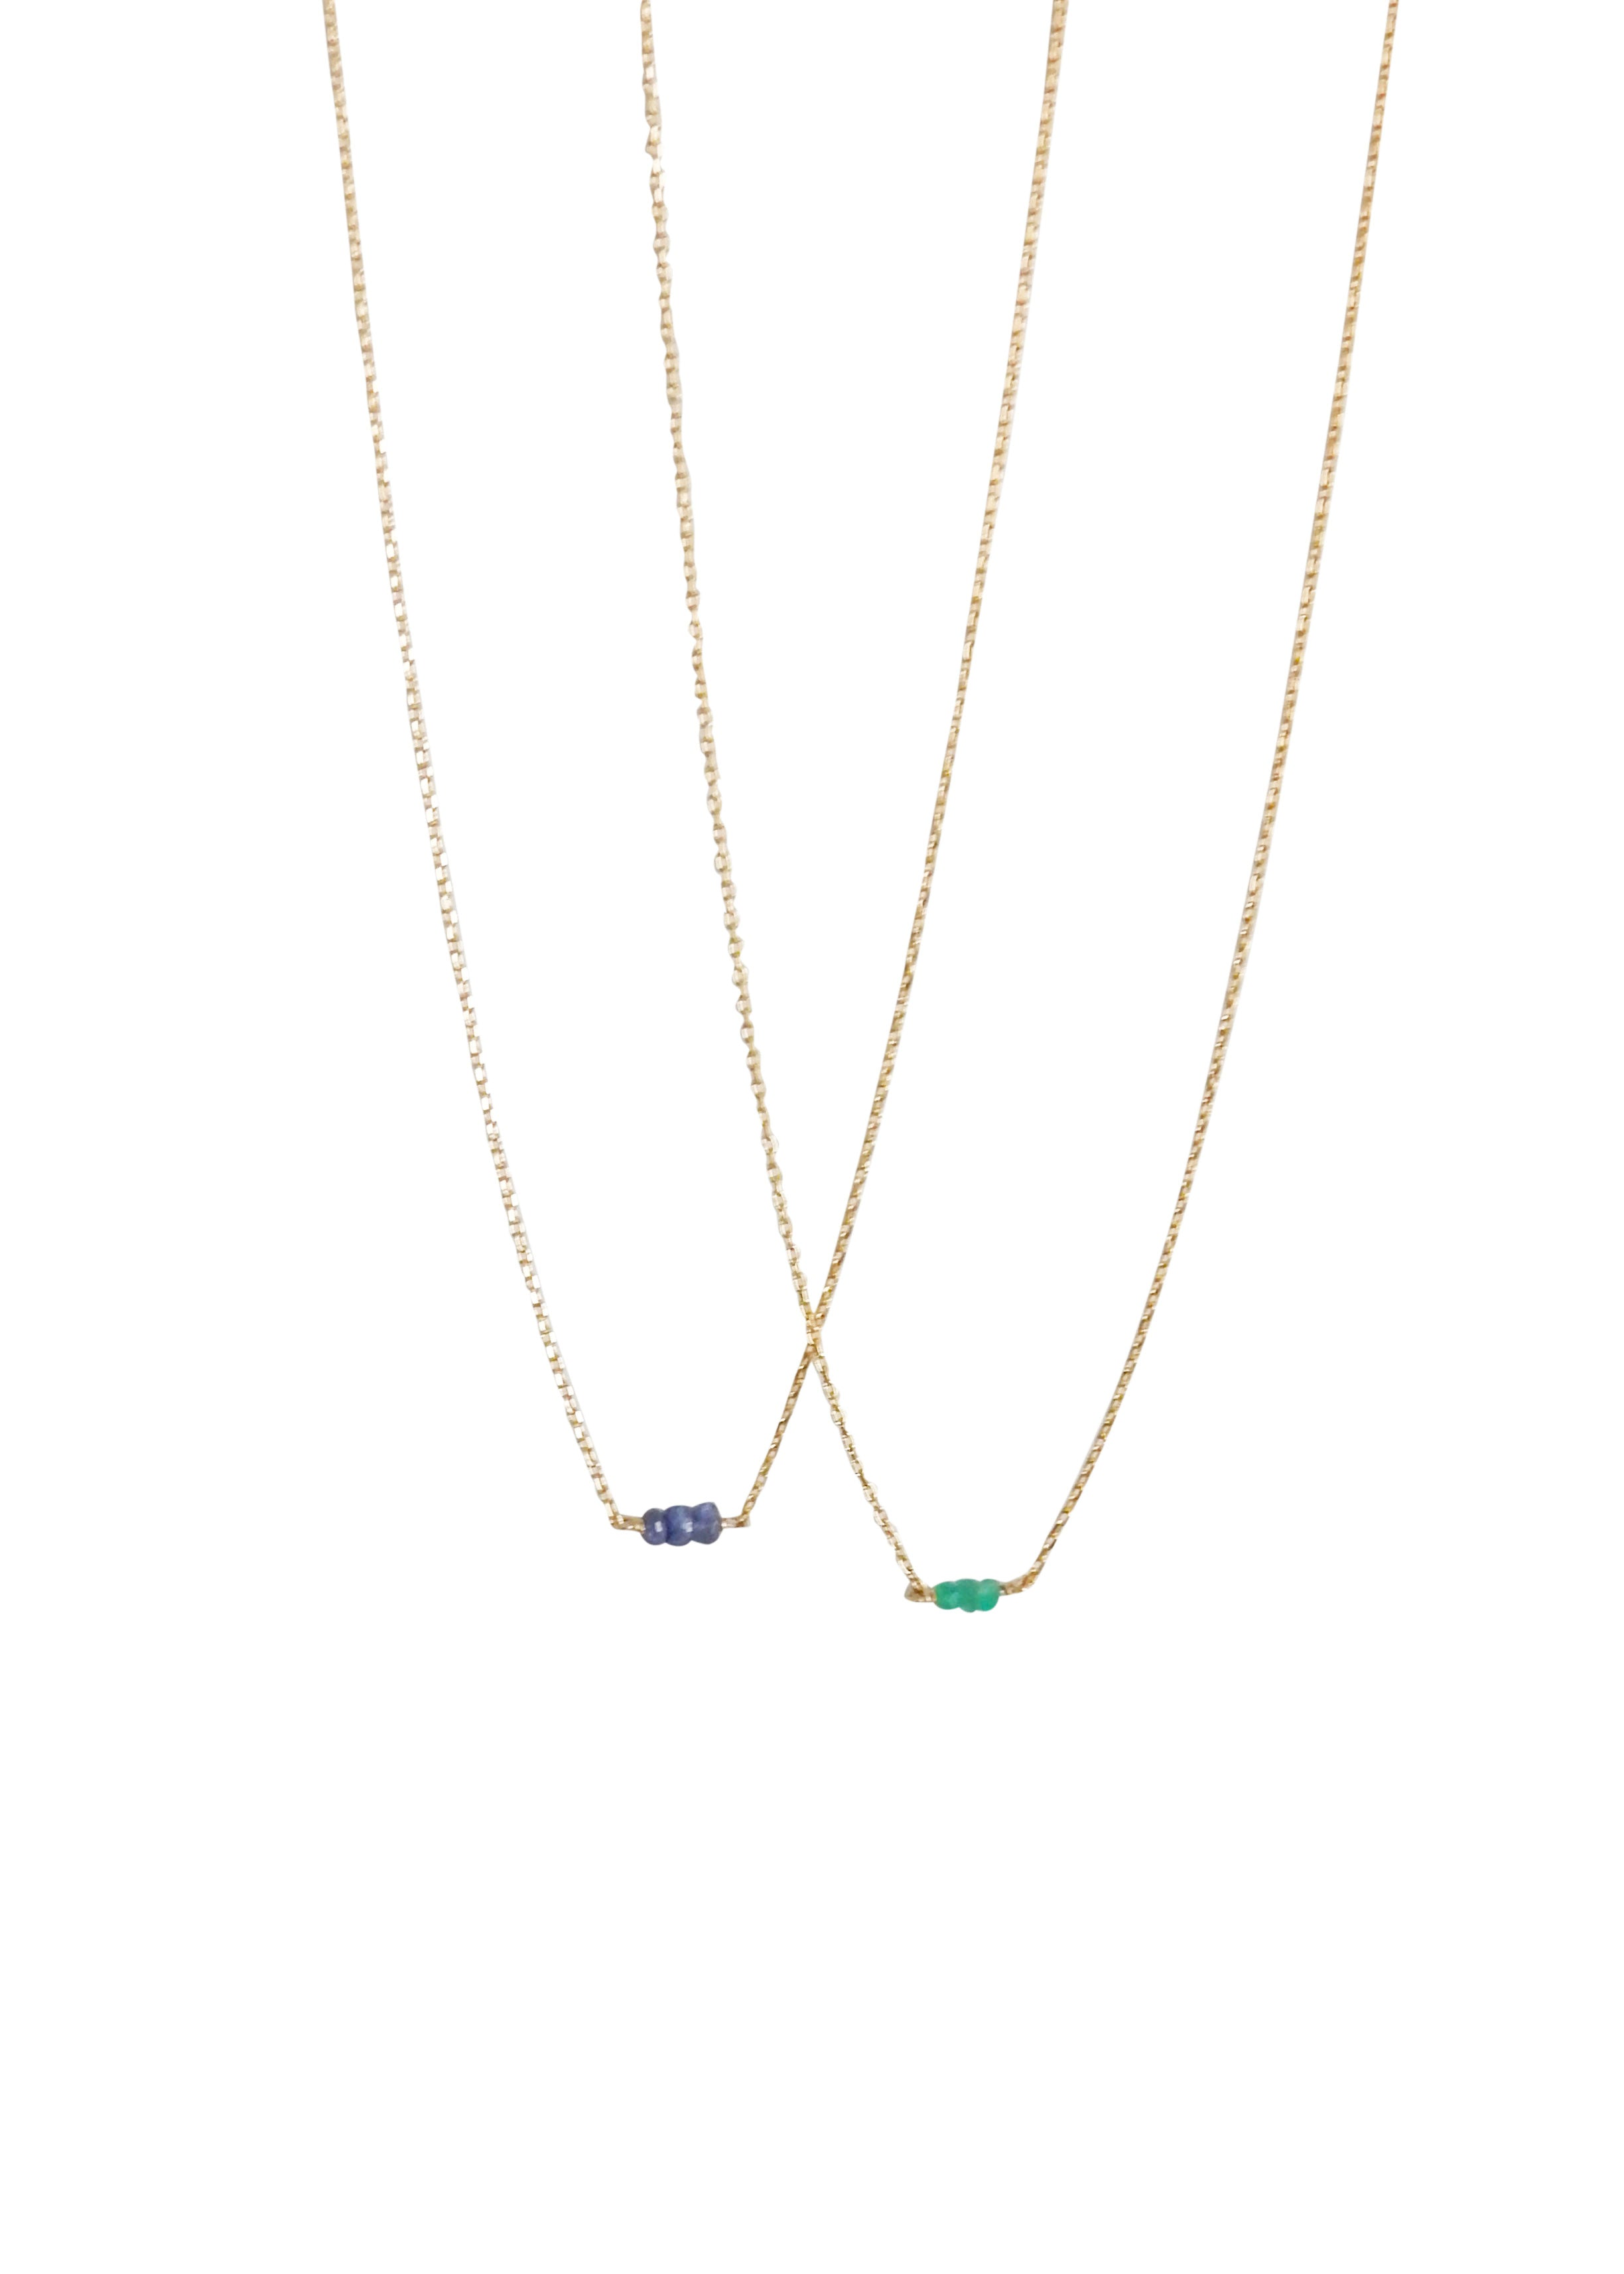 Sophie Deschamps Calvi Necklace Emerald Blue Sapphire Delicate